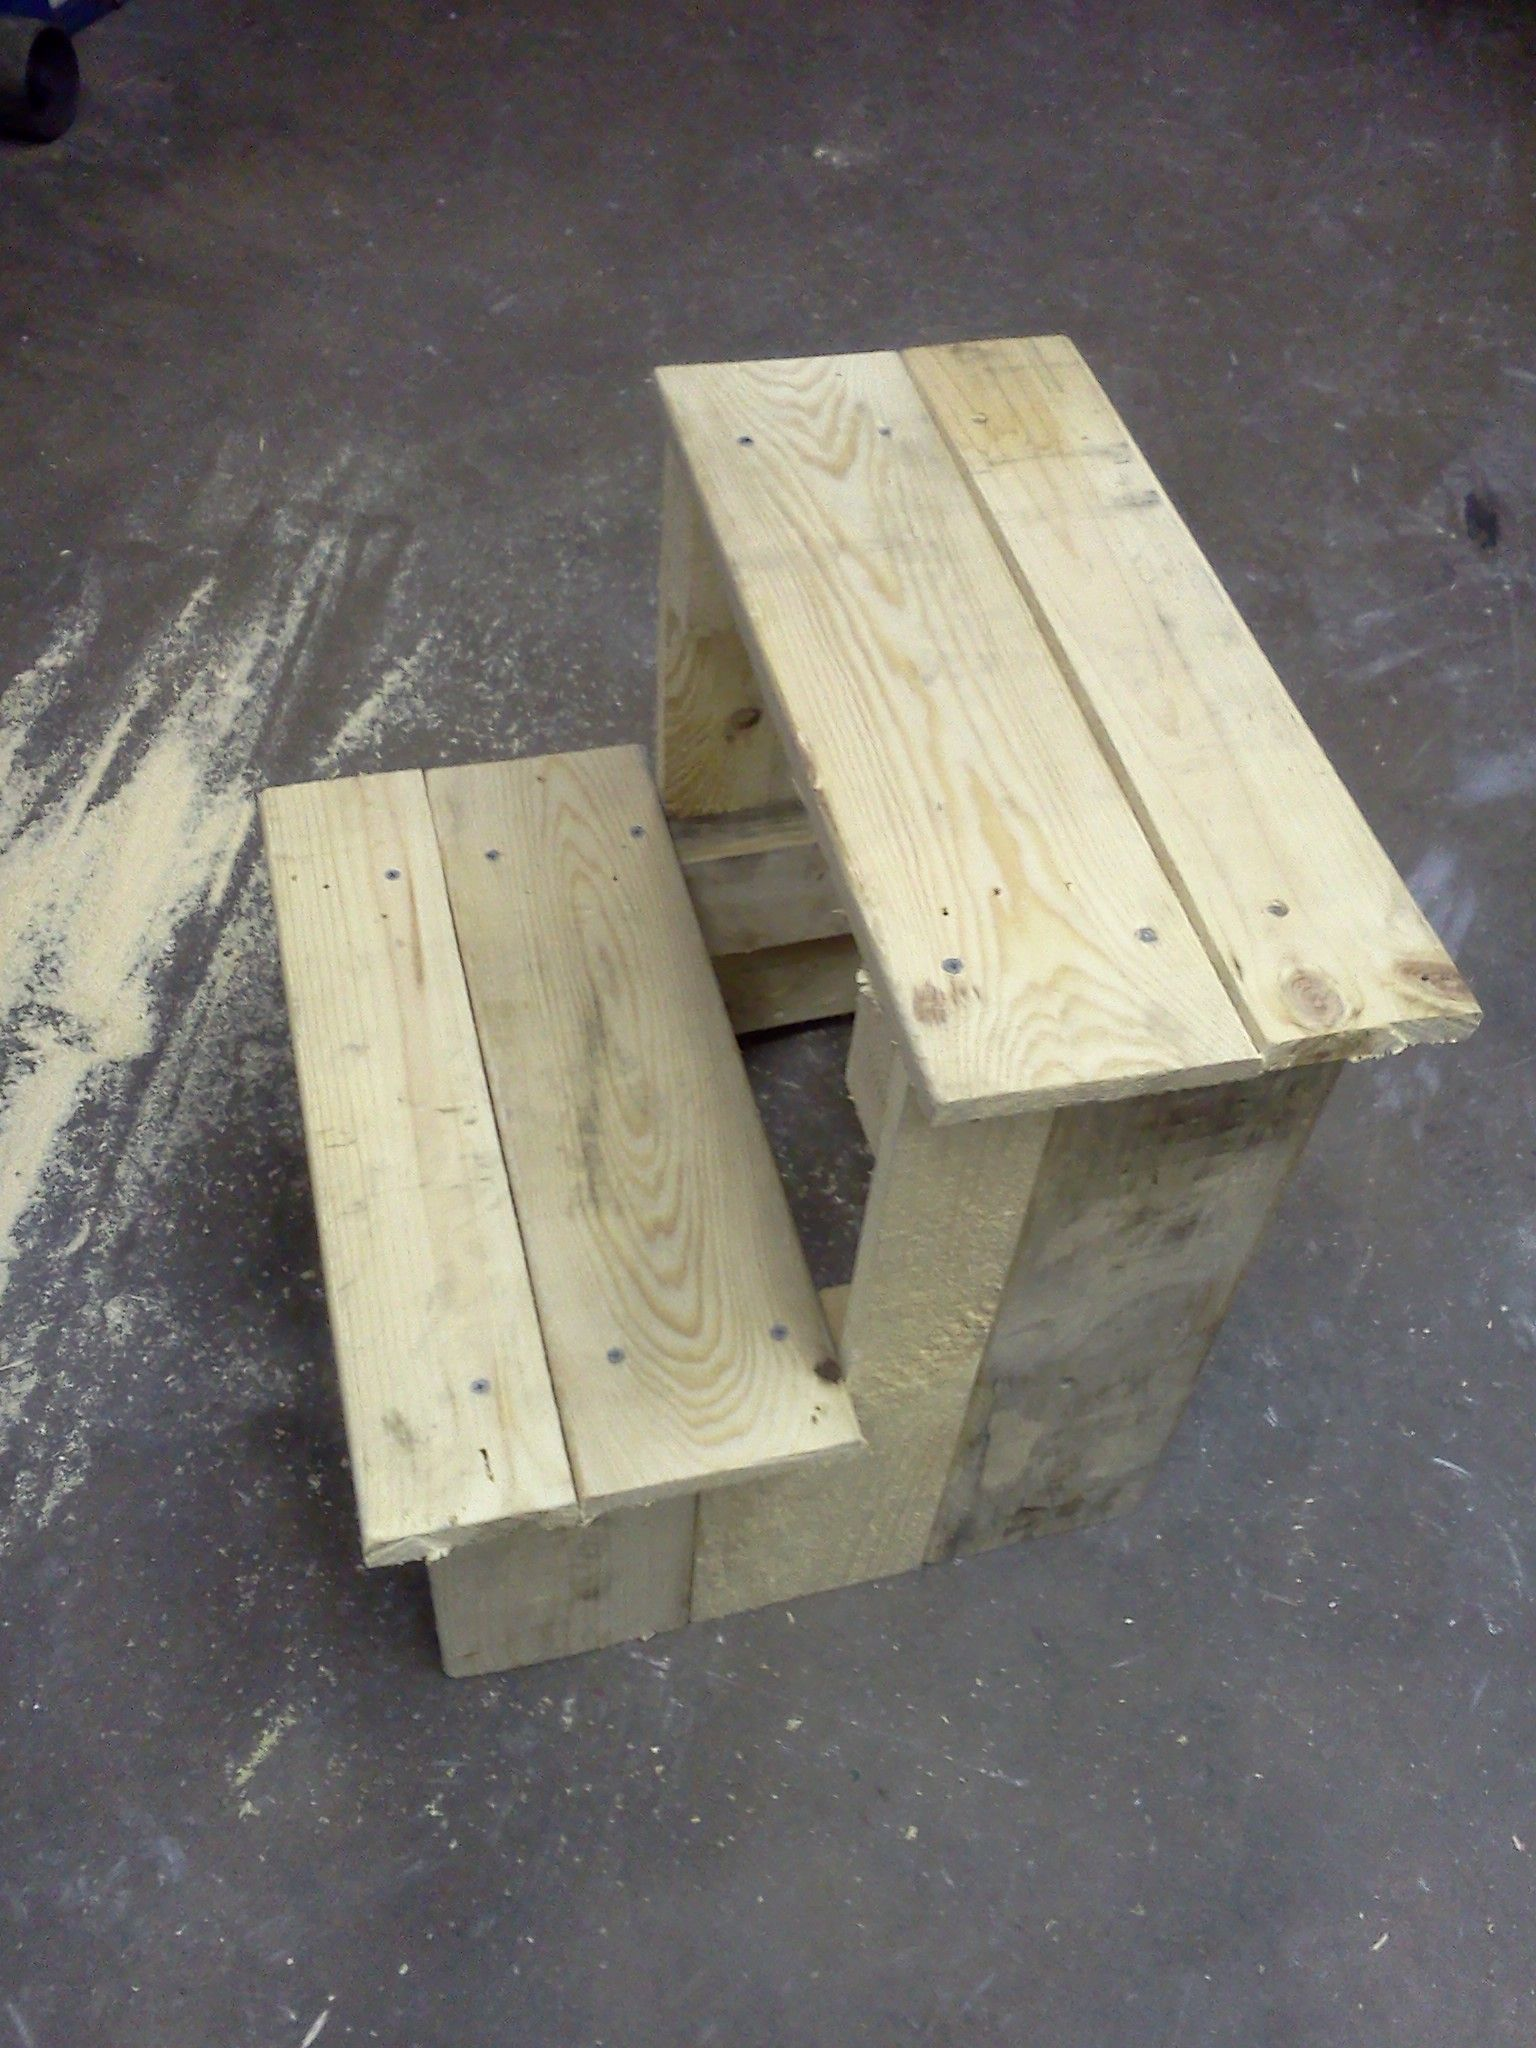 Step stool from a pallet how-to & Step stool from a pallet how-to | Pallet projects | Pinterest ... islam-shia.org